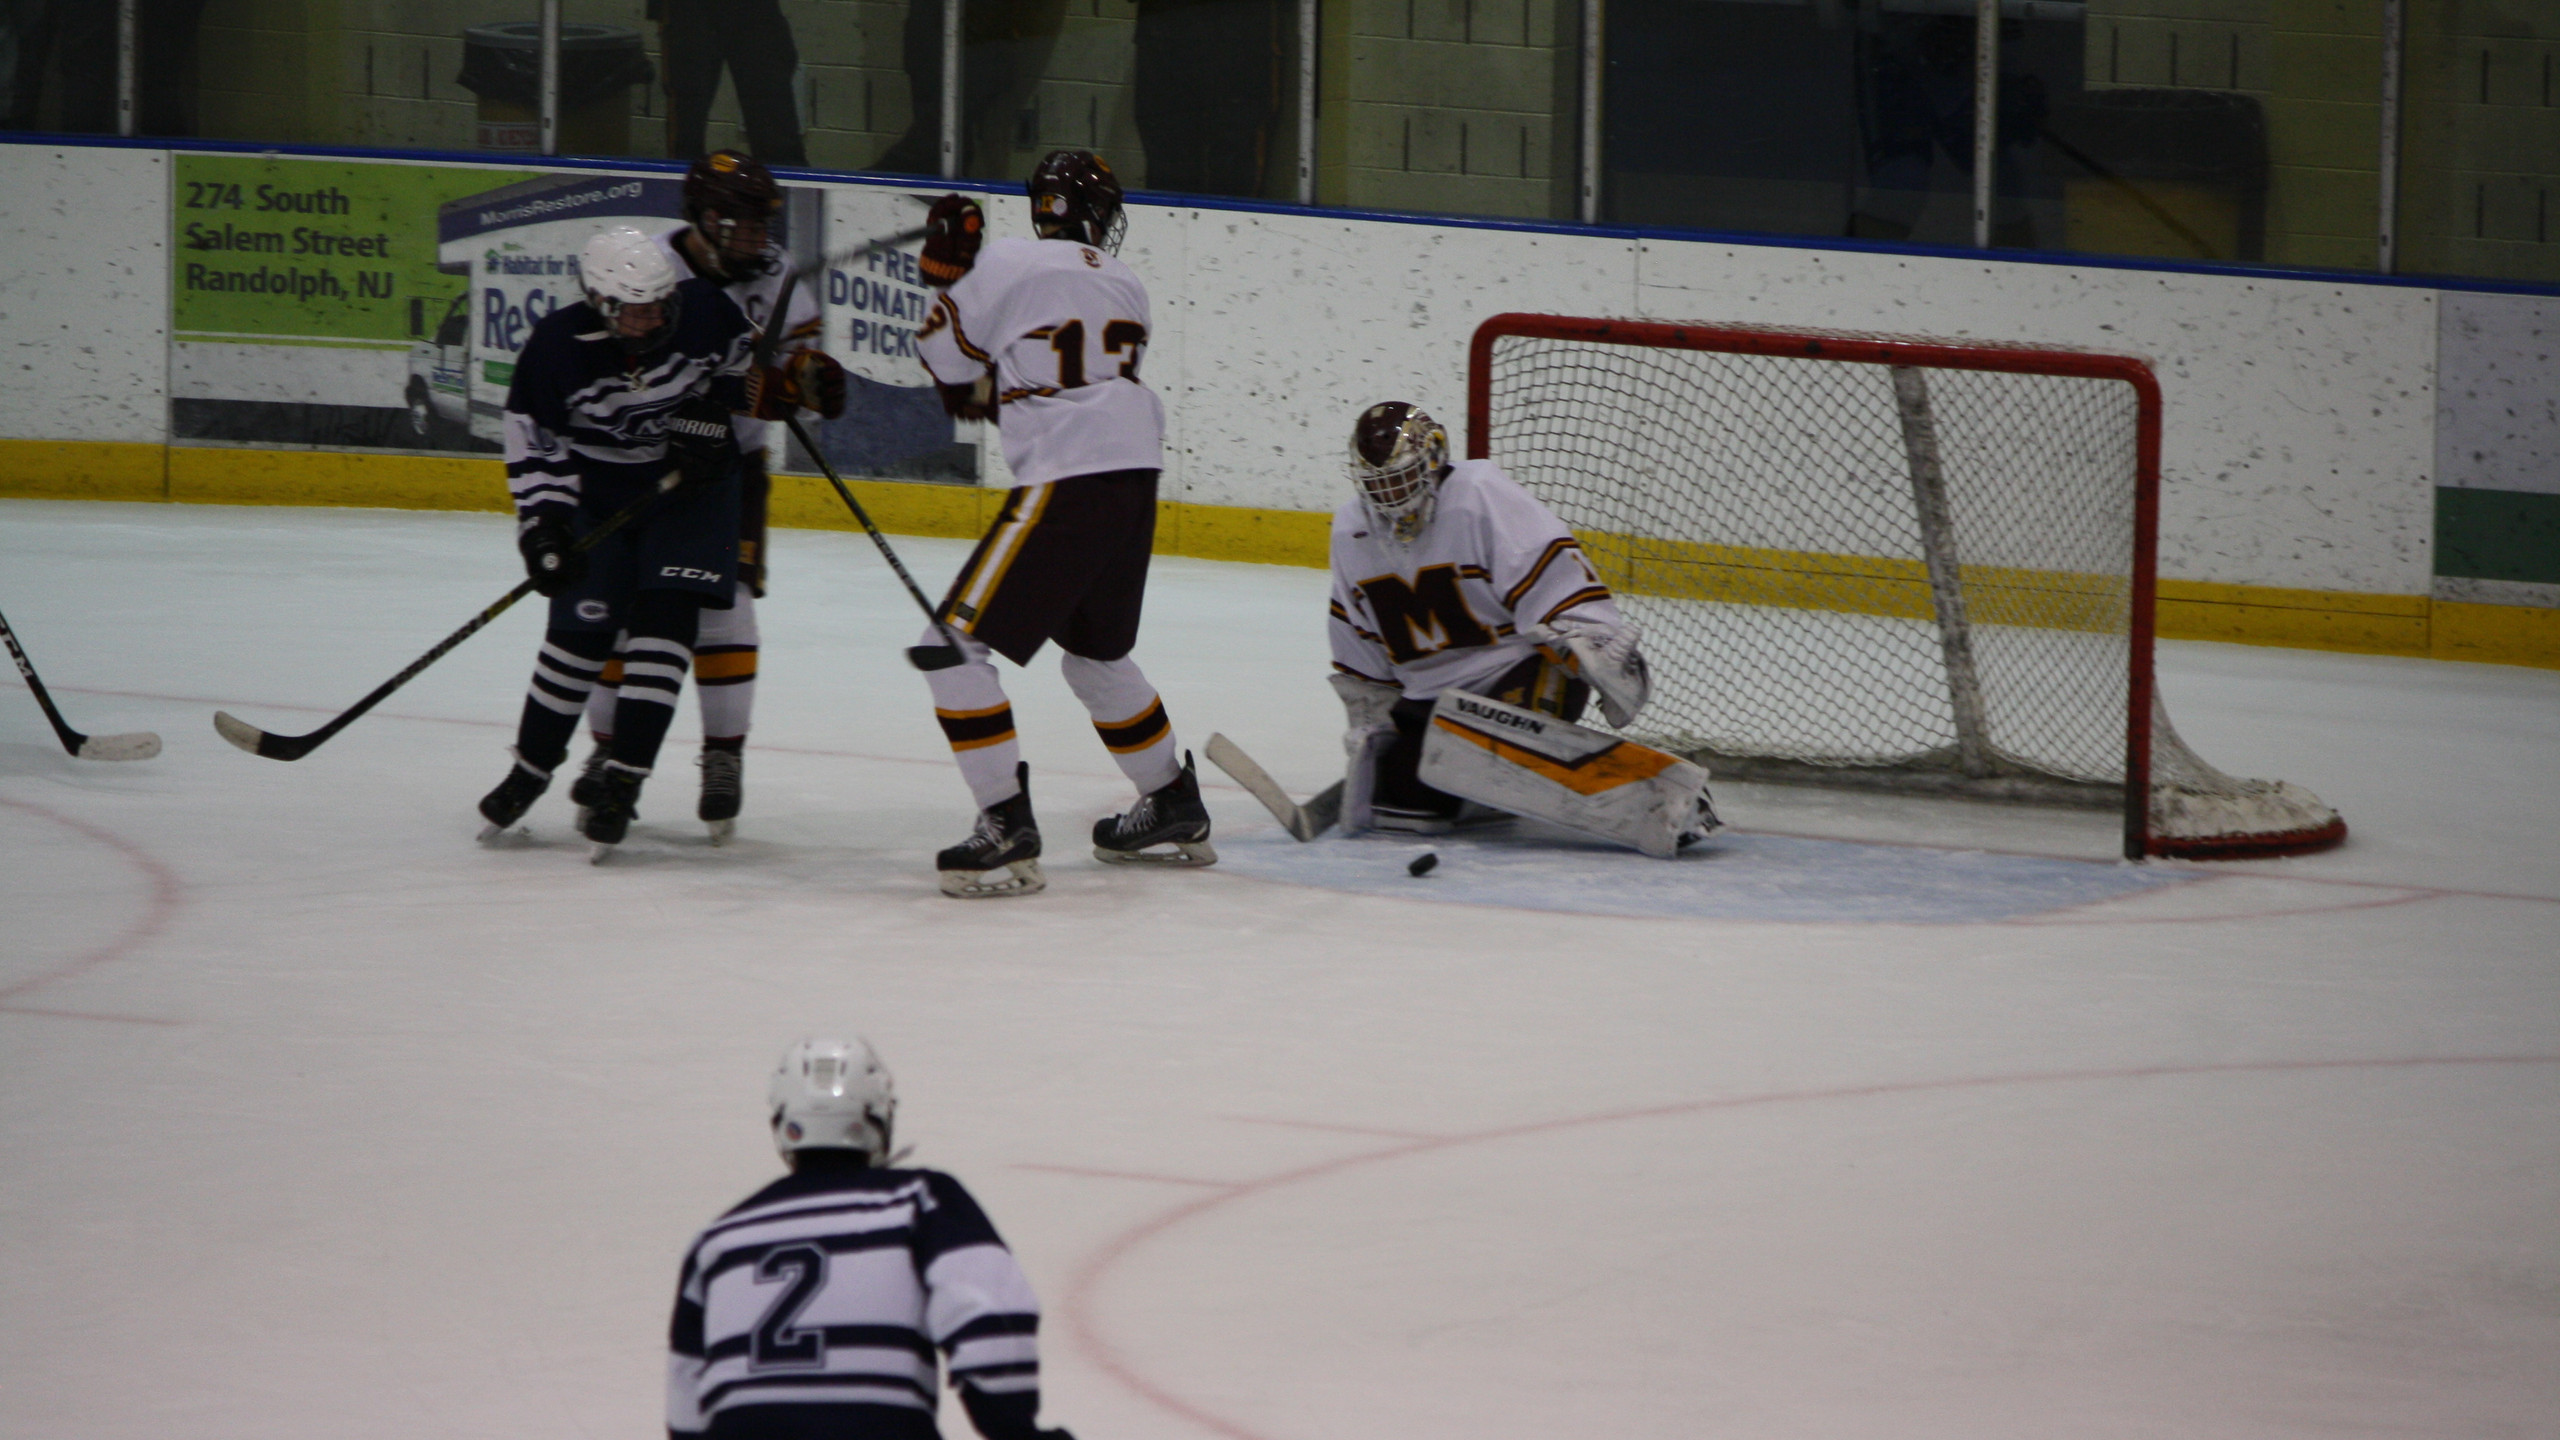 Madison goalie Keaton Tom makes a save against Chatham. (Mike Gurnis | The Morris-Sussex Hockey Report)